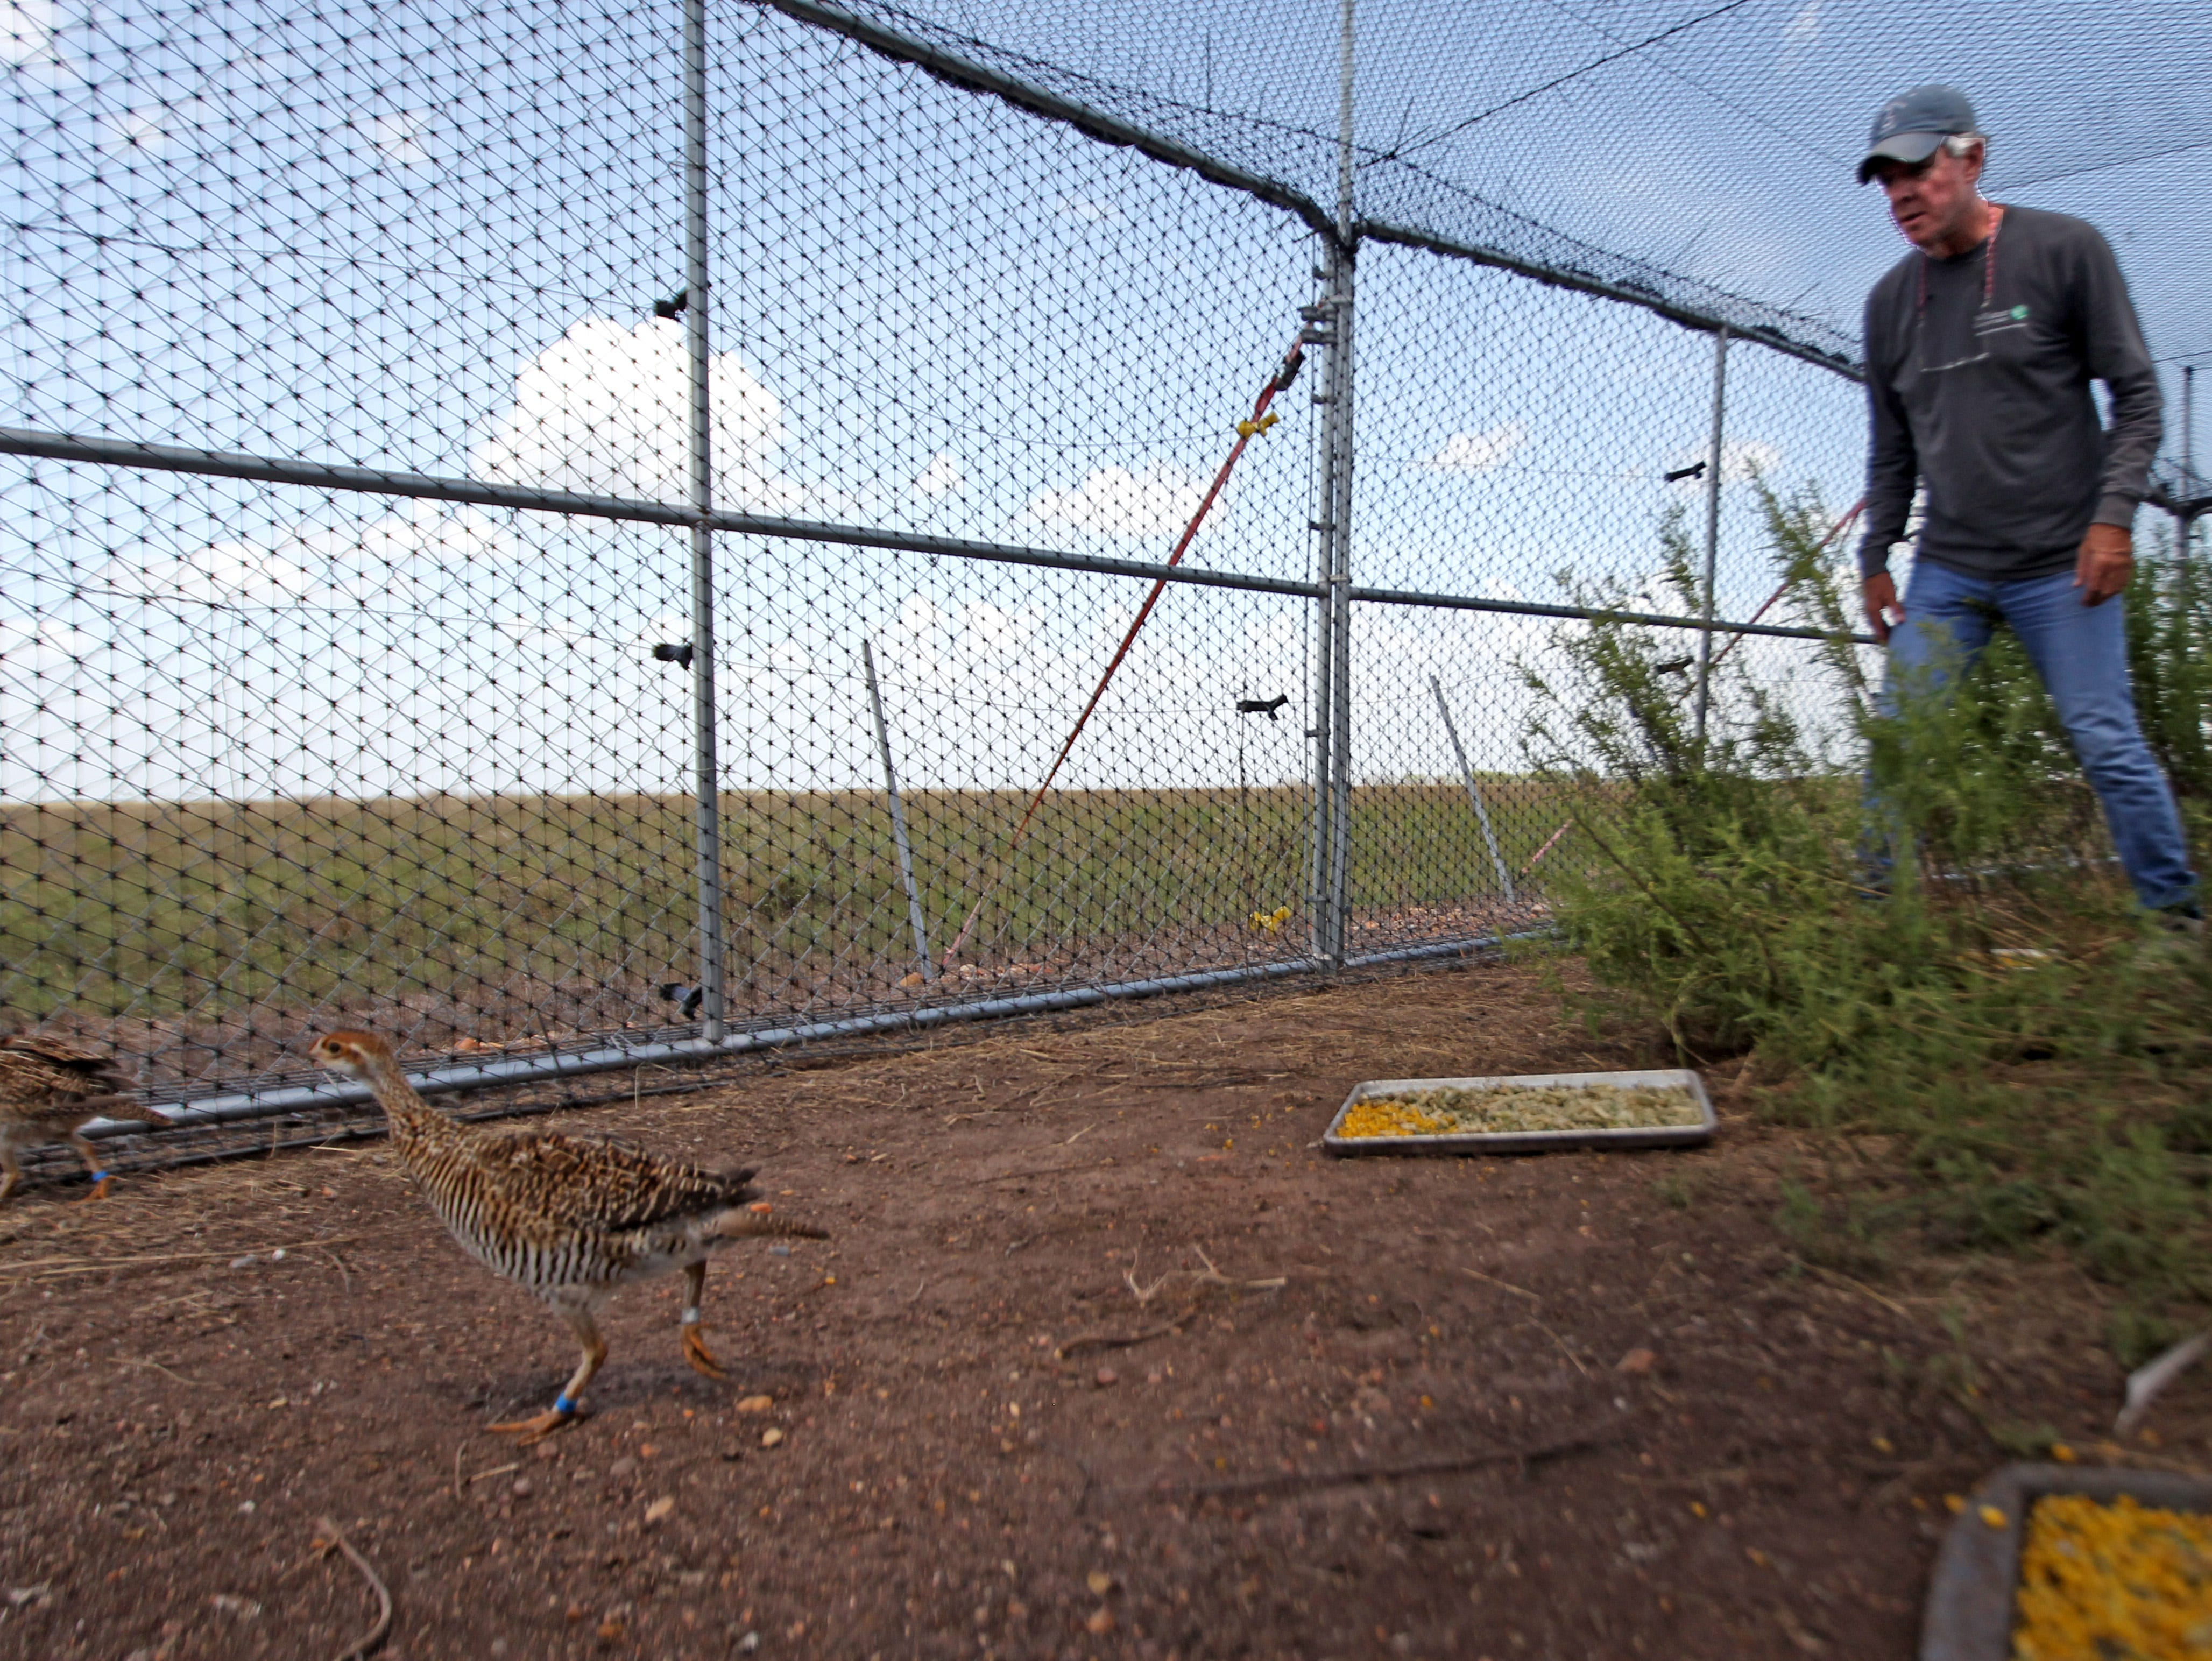 The chore of coaxing the young prairie chickens out of the pens can be tricky when they hide rather than run from Kelso.